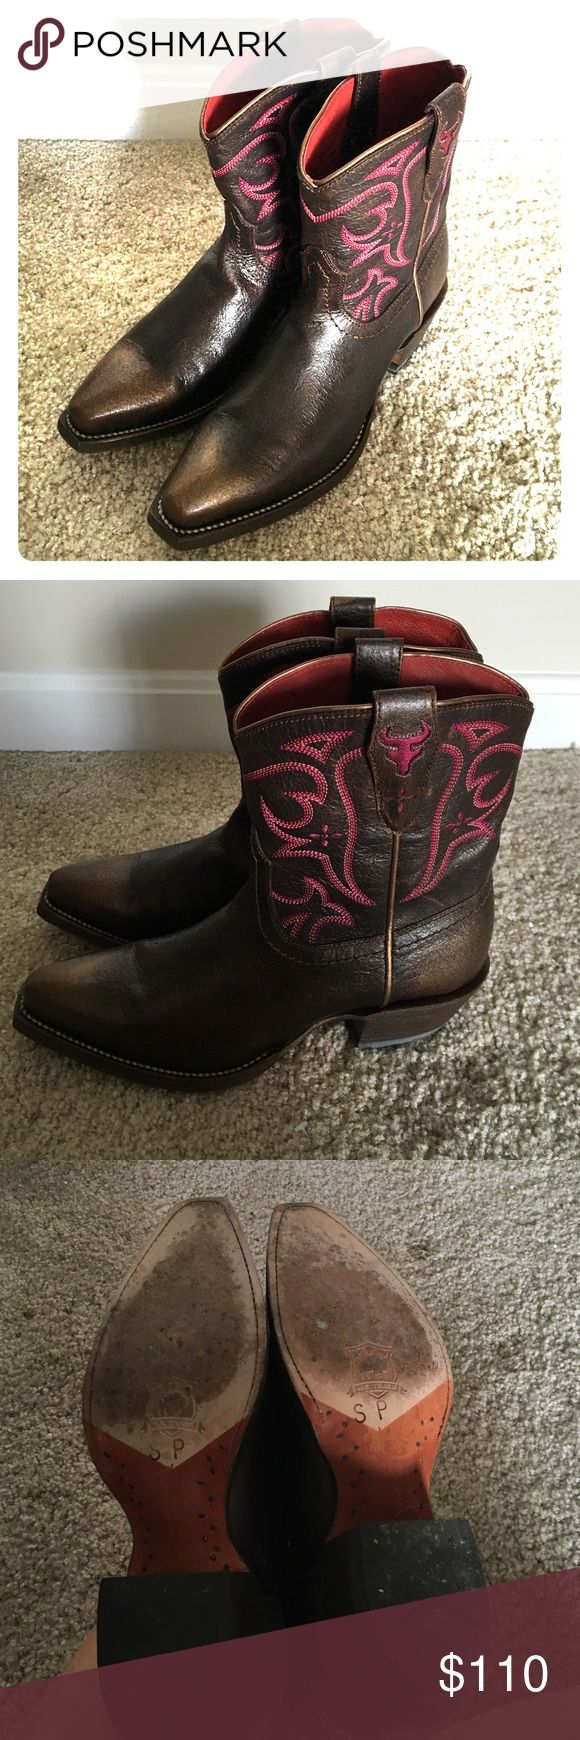 H.S. Trask brown and pink ankle cowboy boots Classic short cowboy boots by H.S. Trask! Leather sole, leather interior, and leather outsole. Made in Mexico. These are sure to turn heads! H.S. Trask Shoes Ankle Boots & Booties